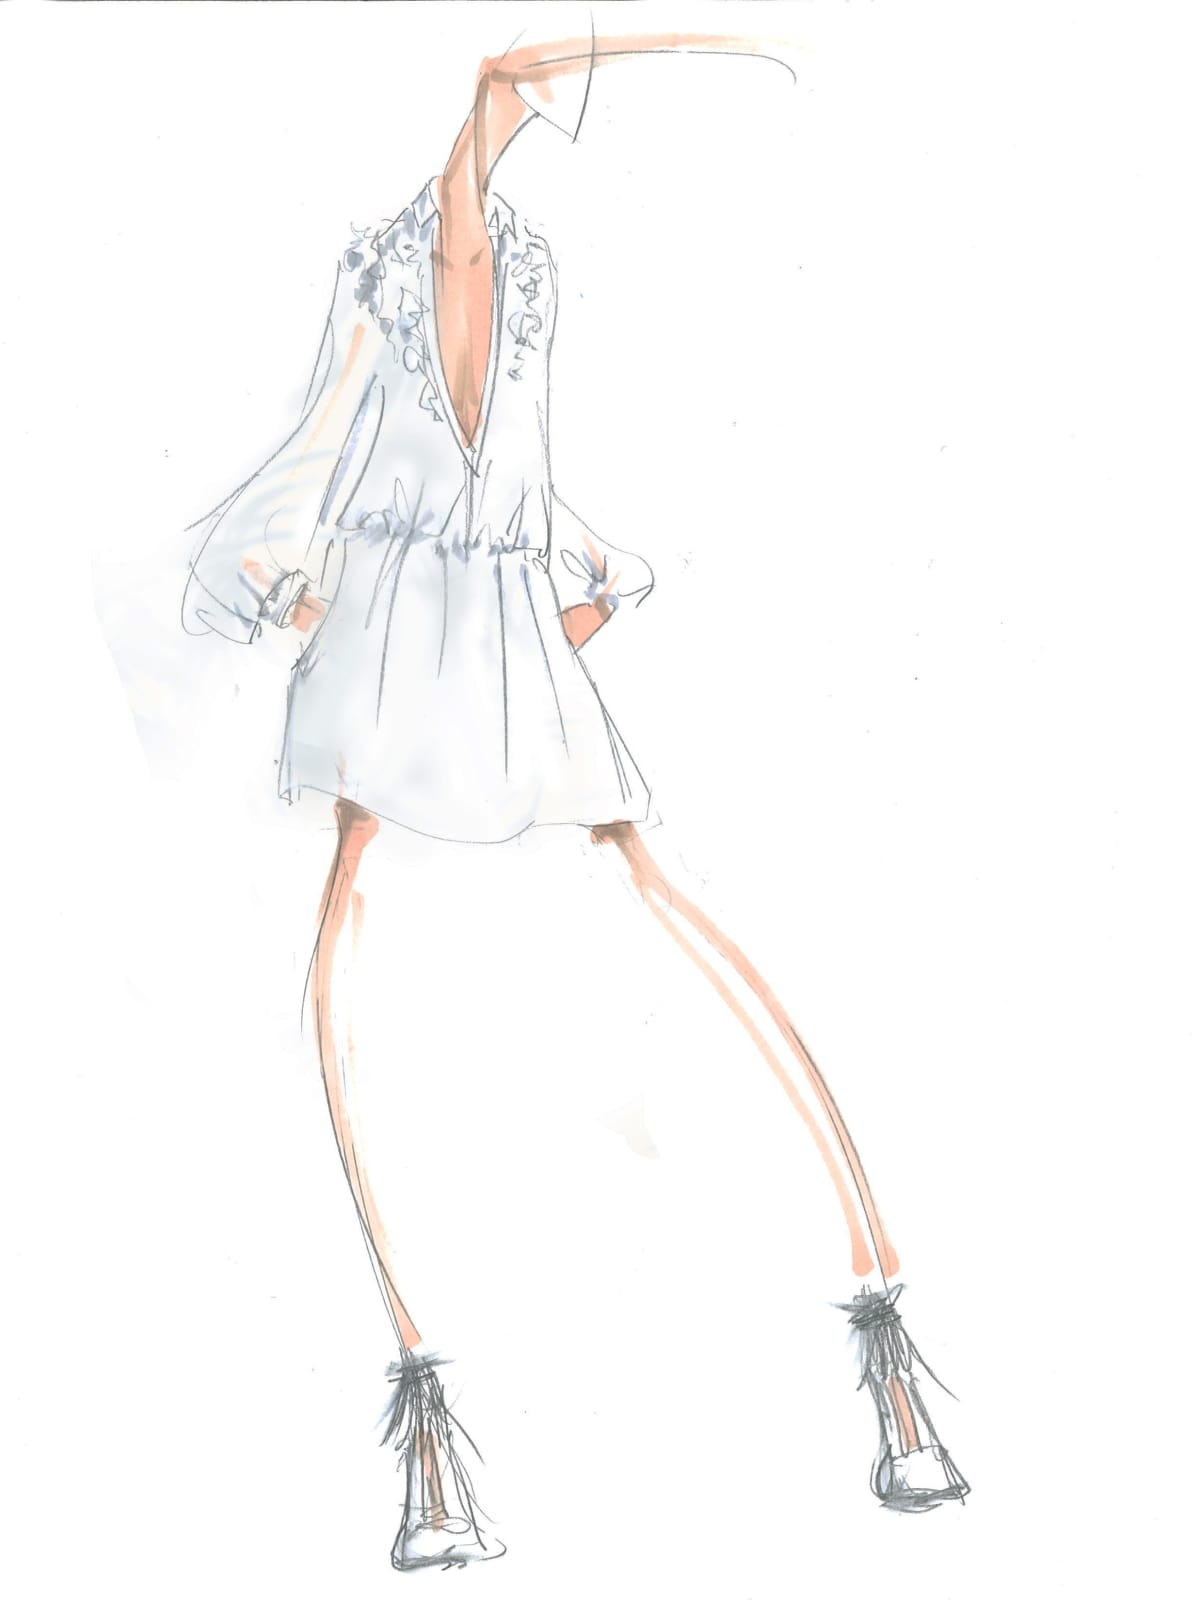 BCBG Max Azria inspiration sketch fall 2016 collection New York Fashion Week